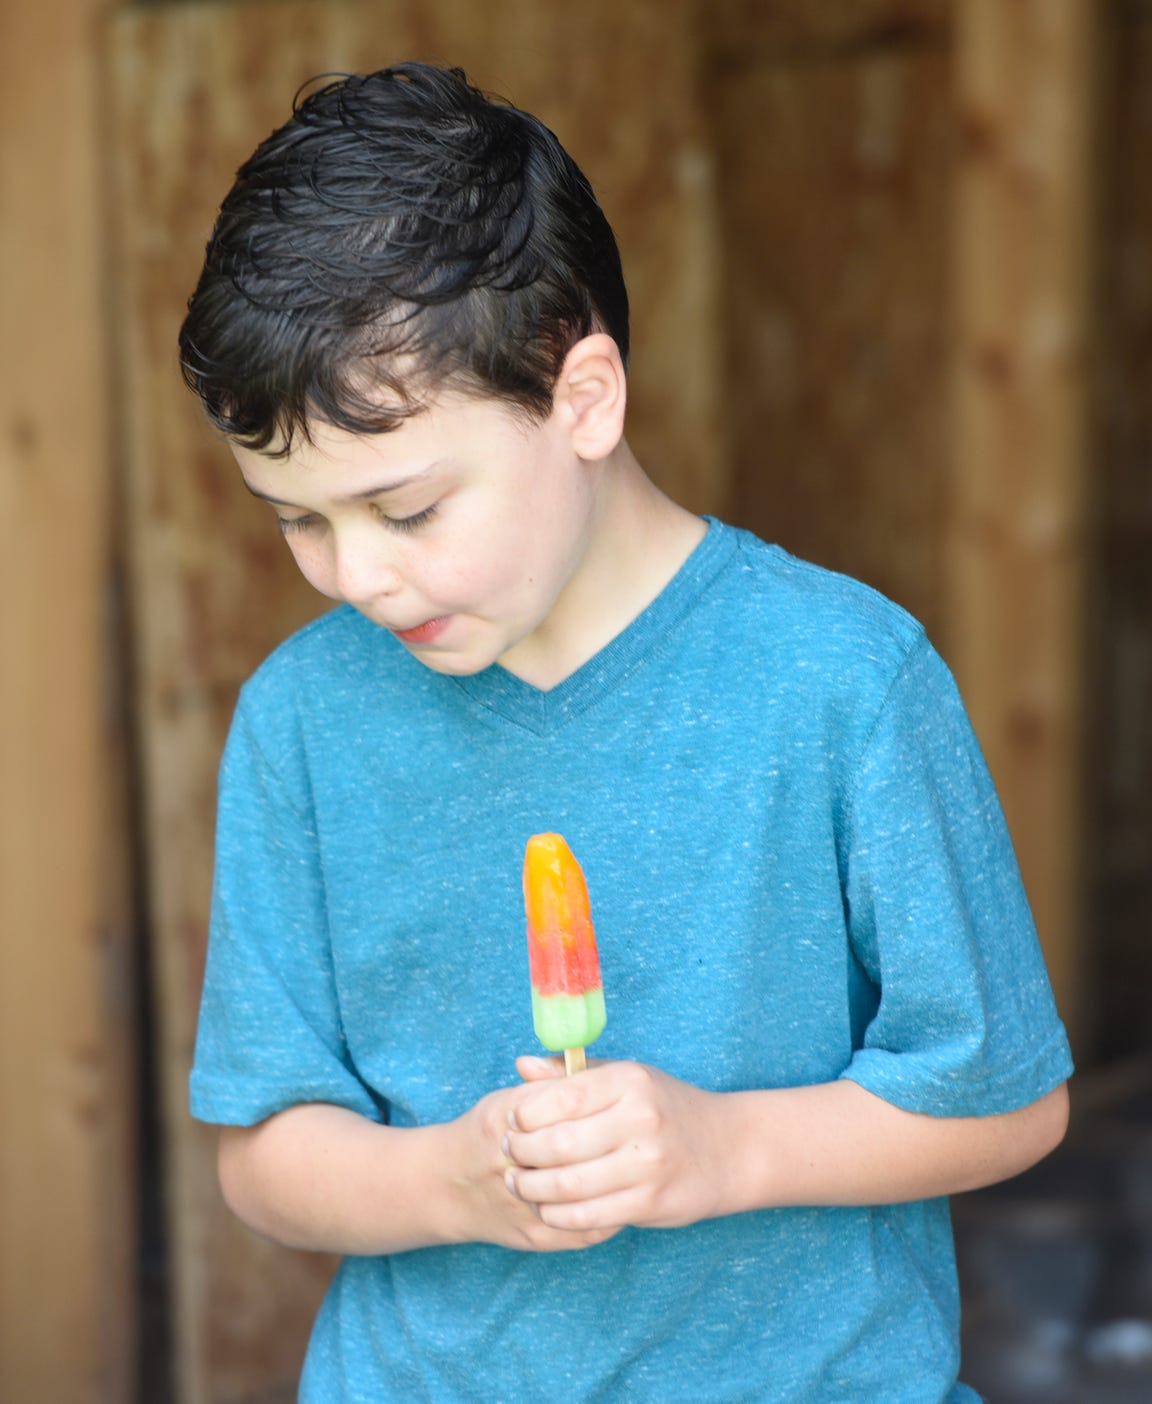 Carter Newville-Larson eats a popsicle Tuesday, July 2, 2019.